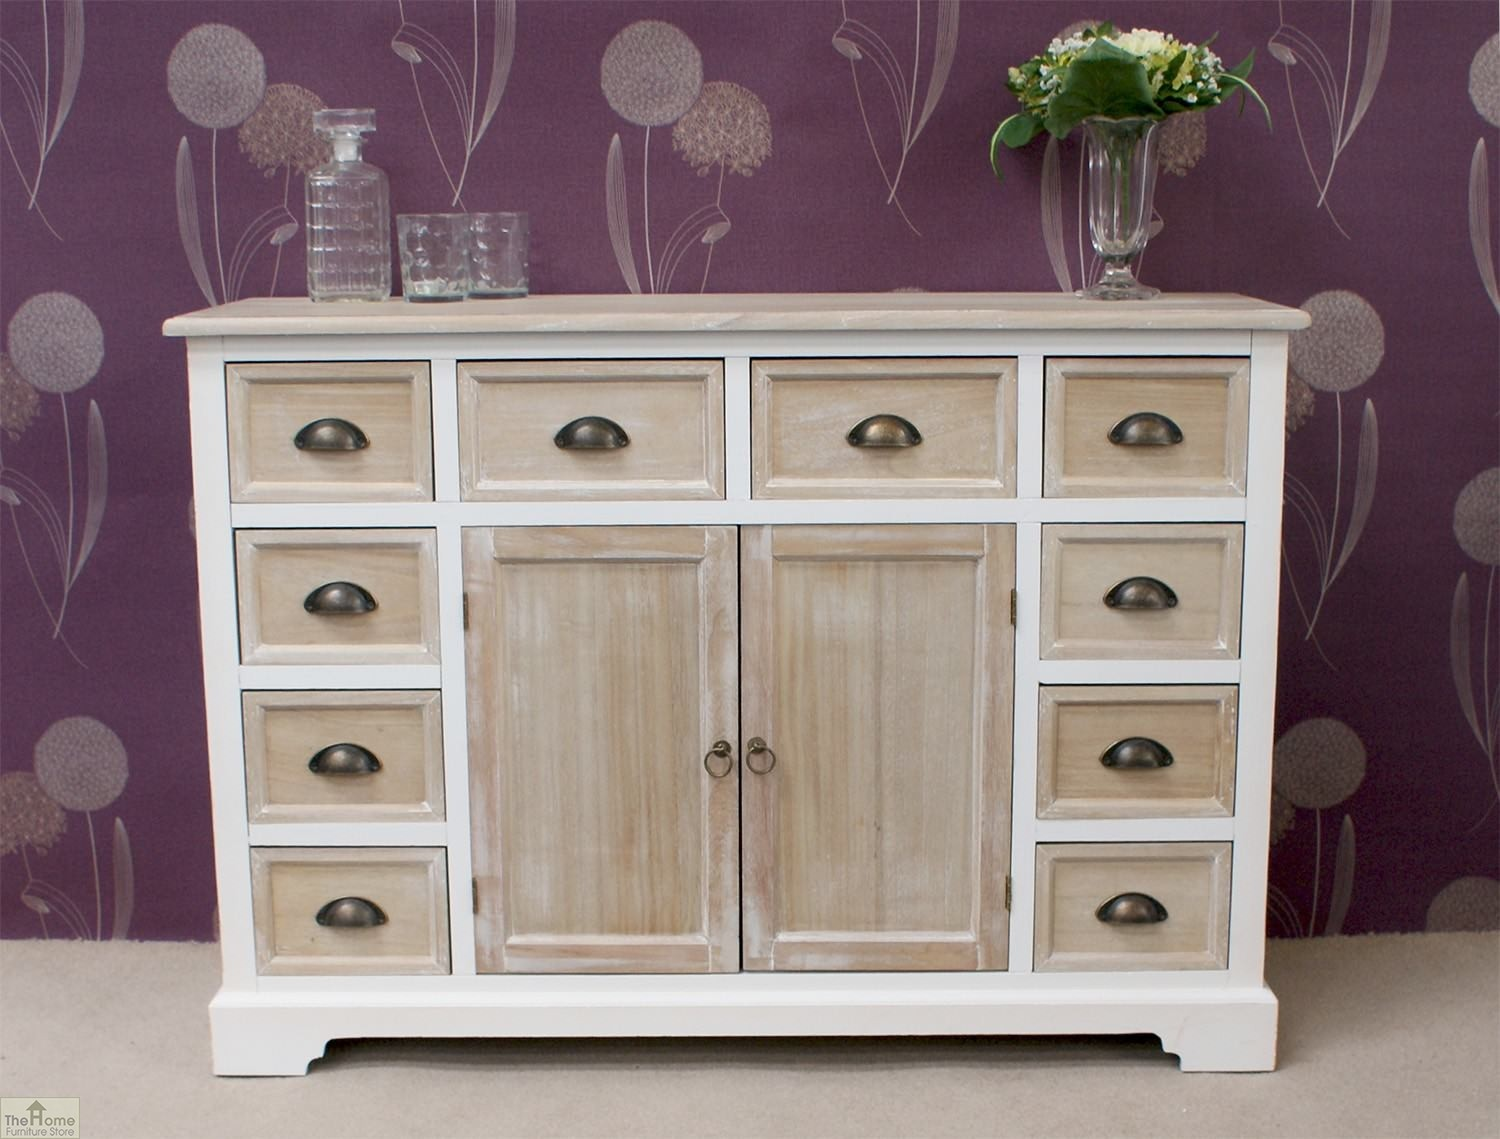 cotswold 10 drawer 2 door sideboard the home furniture store. Black Bedroom Furniture Sets. Home Design Ideas